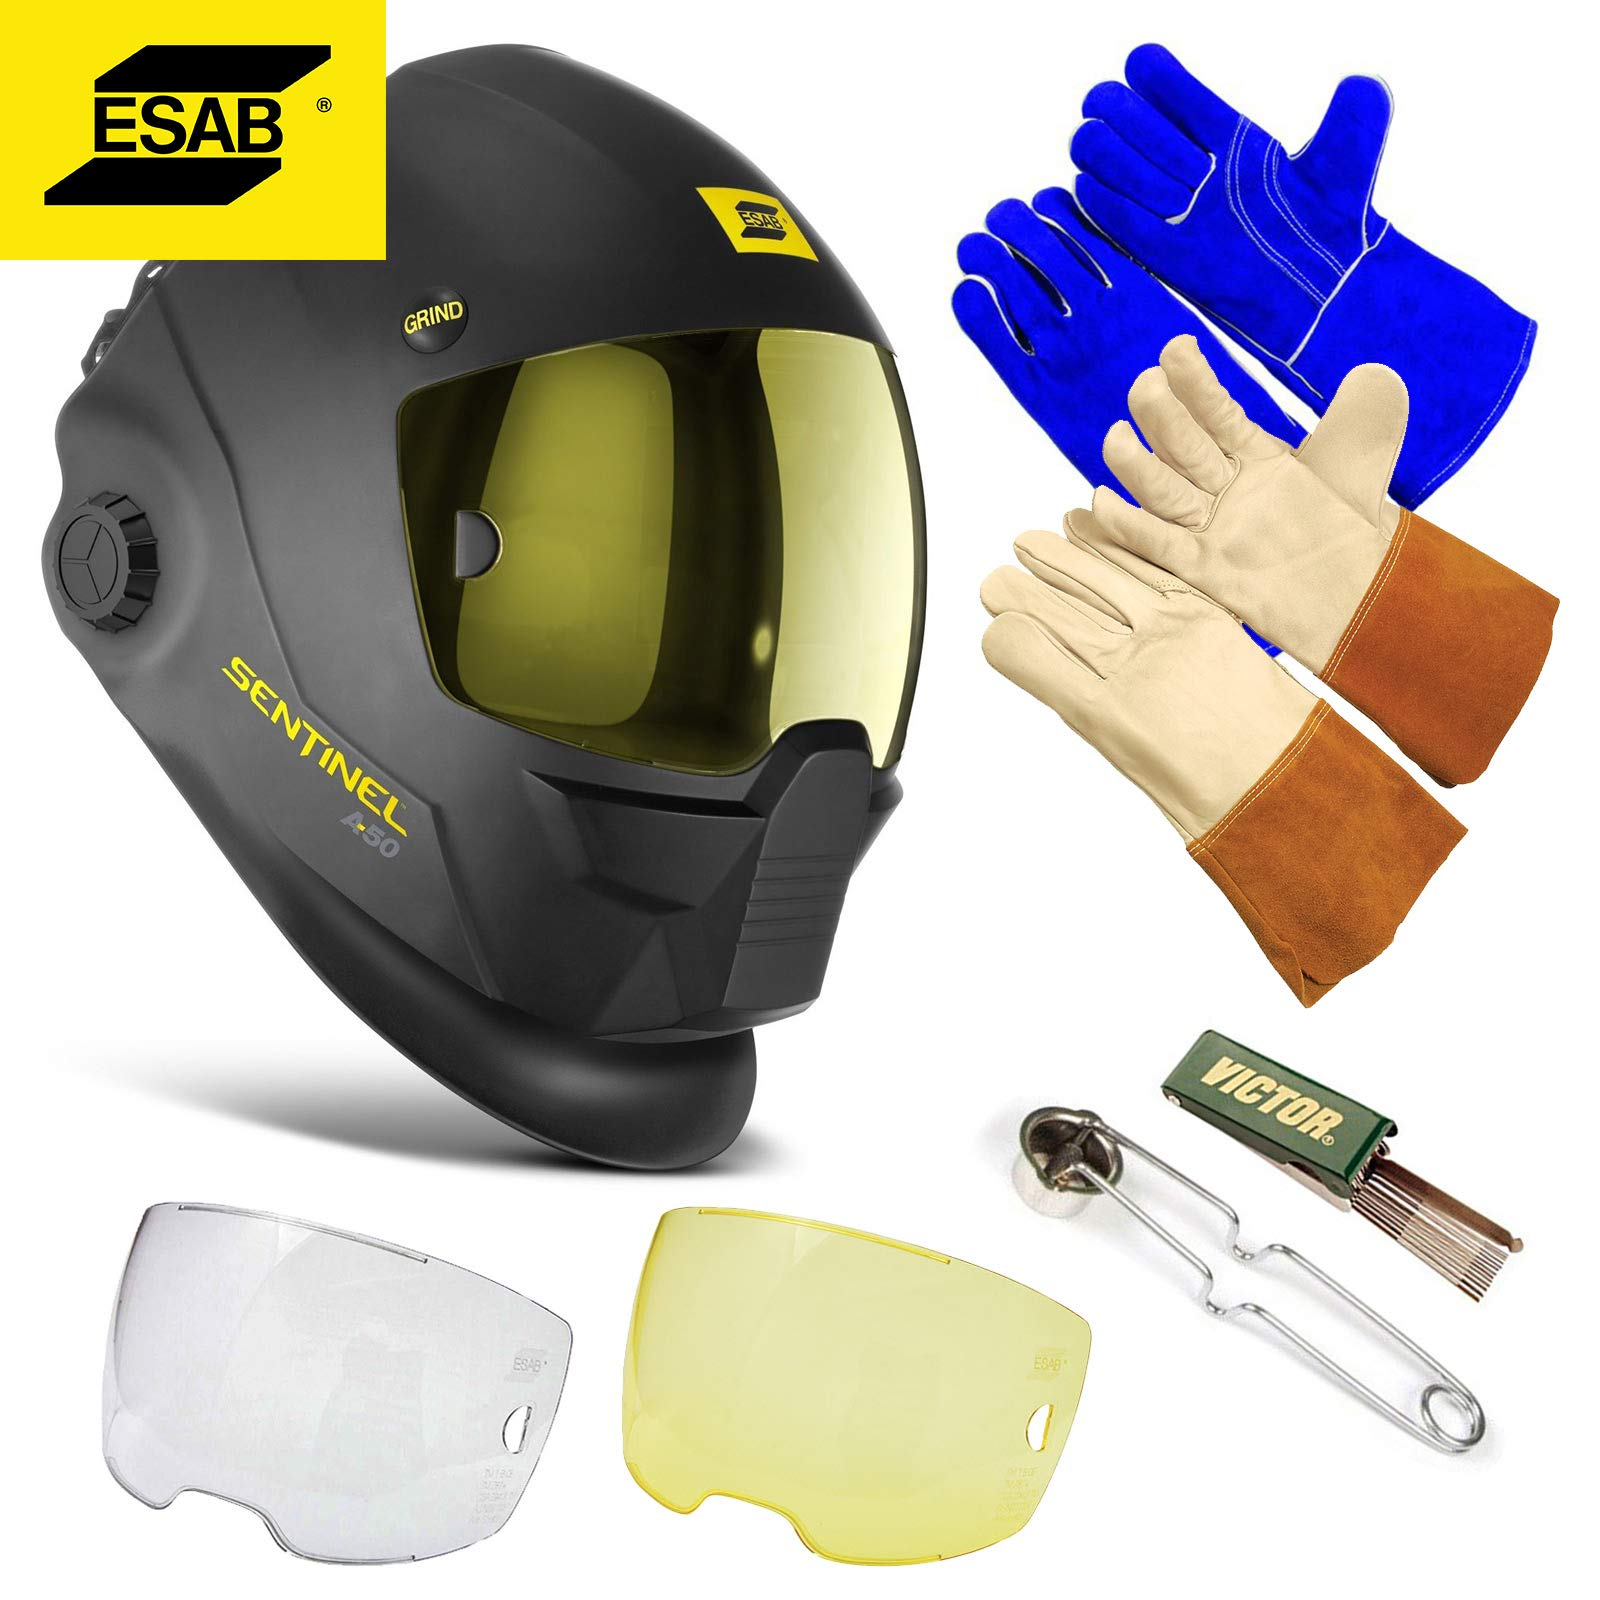 Esab Sentinel Automatic Welding A50 Helmet Hood, Part# 0700000800 - Brand New, Not In Original Packaging - Full Manufacturer's Warranty